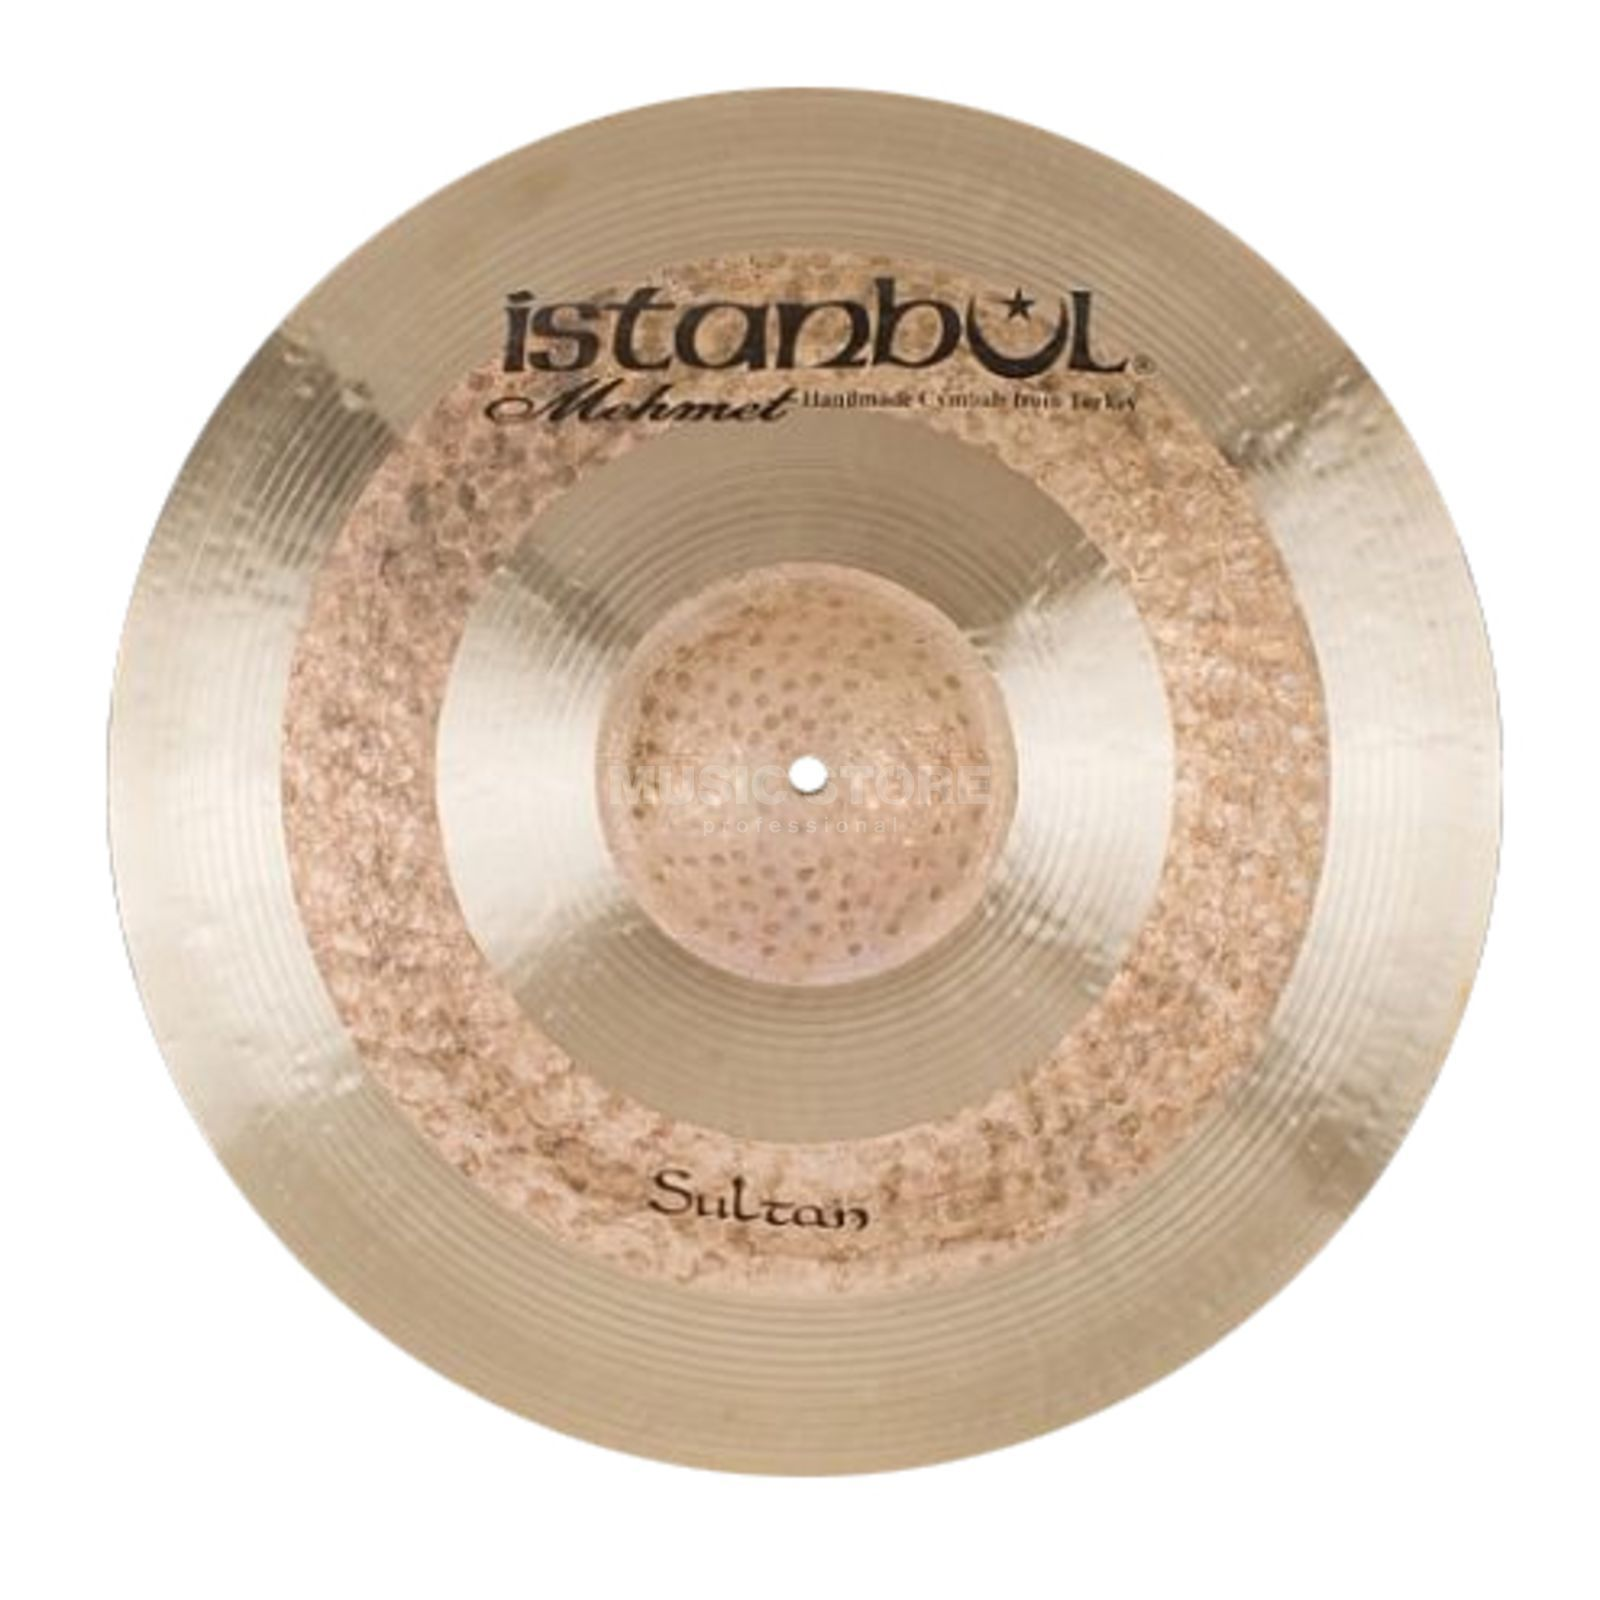 "Istanbul Sultan Thin Crash 16"", CTS17 Produktbillede"